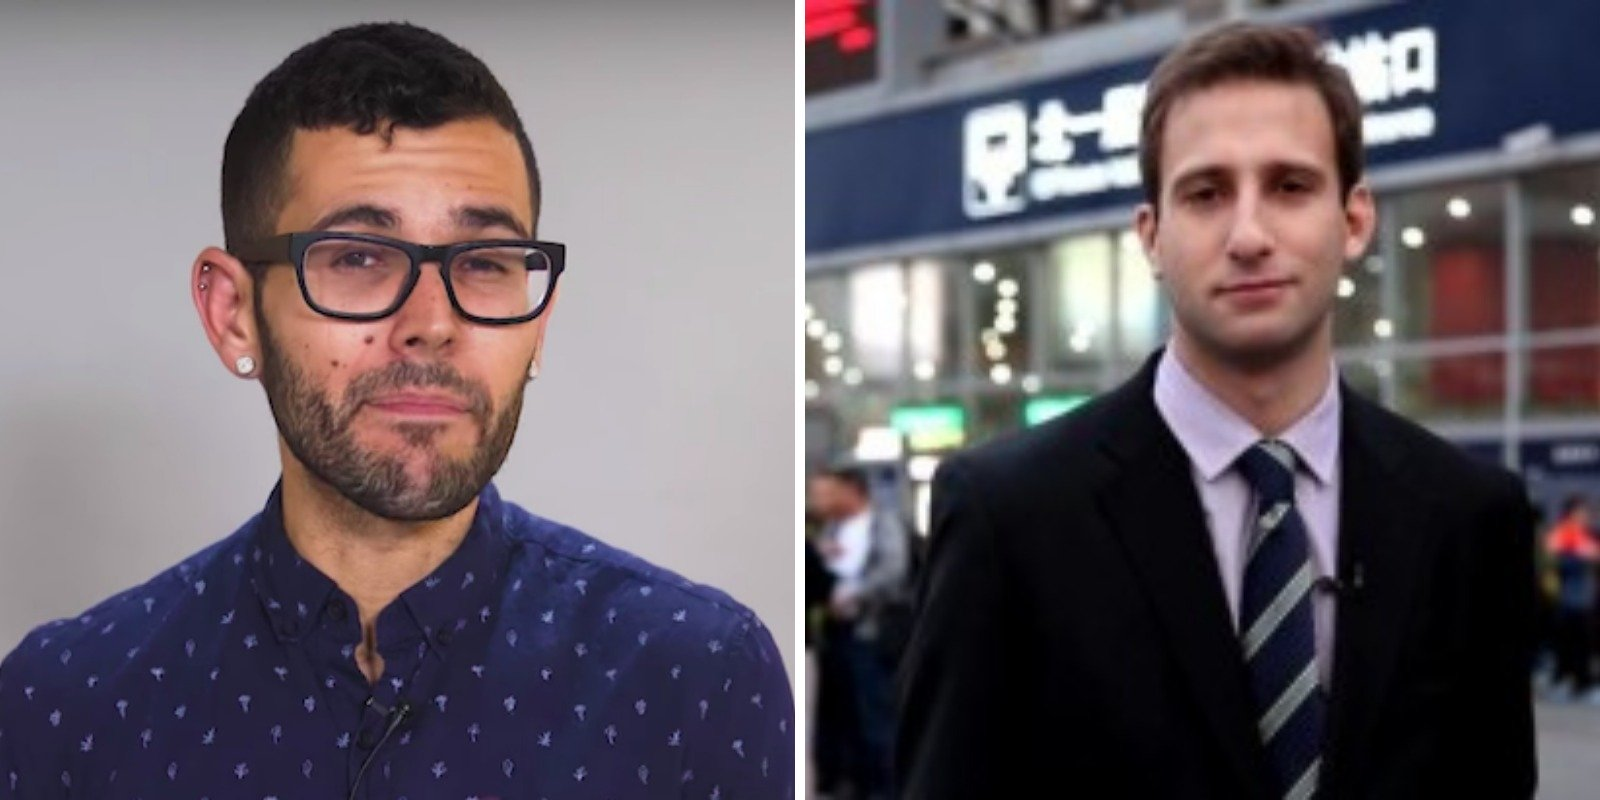 Twitter suspends NY Post writer after he exposes Carlos Maza's riches and hypocrisy